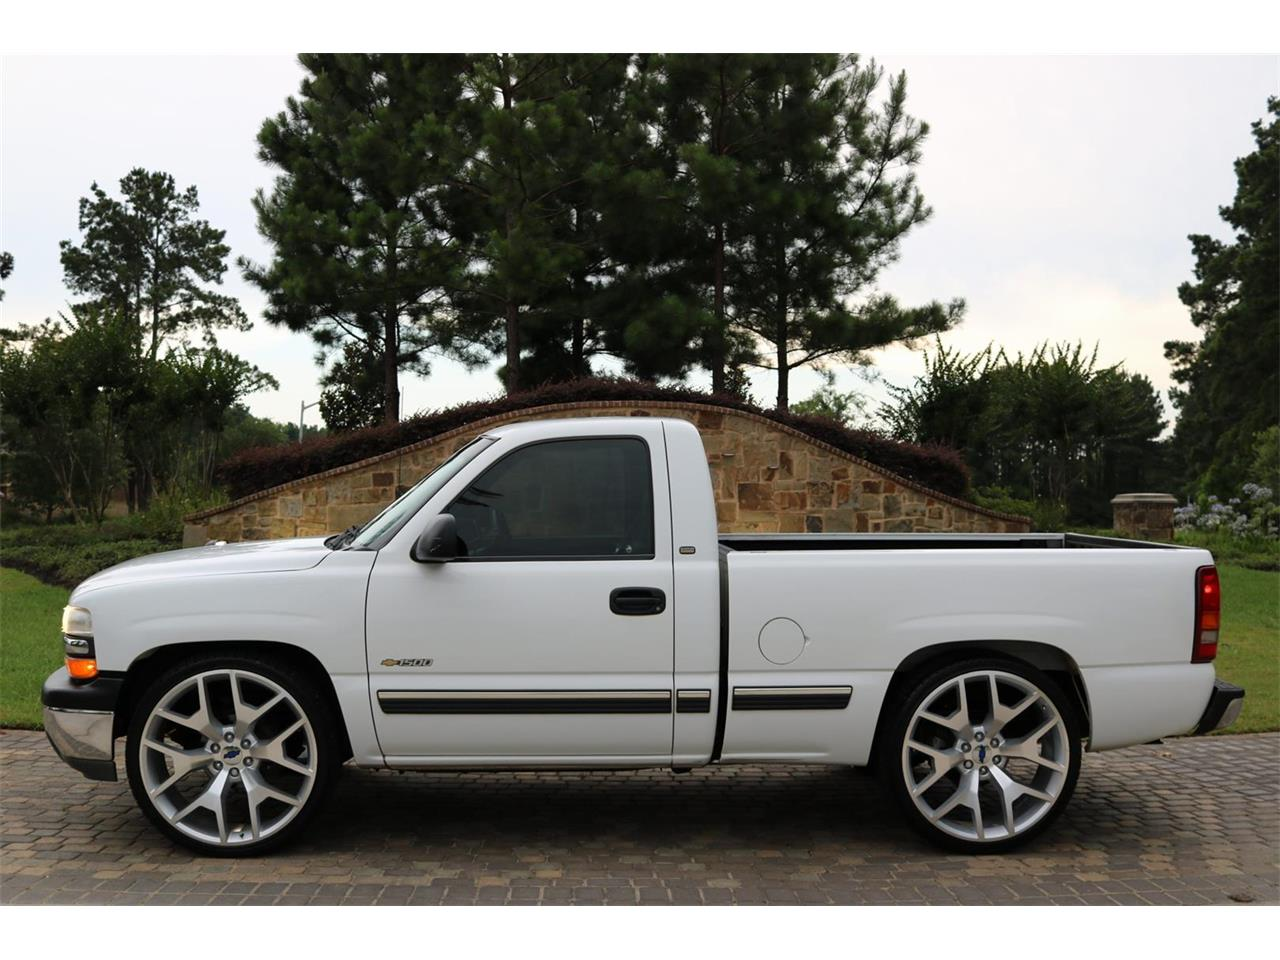 Large Picture of 2000 Chevrolet Silverado located in Conroe Texas - $9,900.00 - PS94